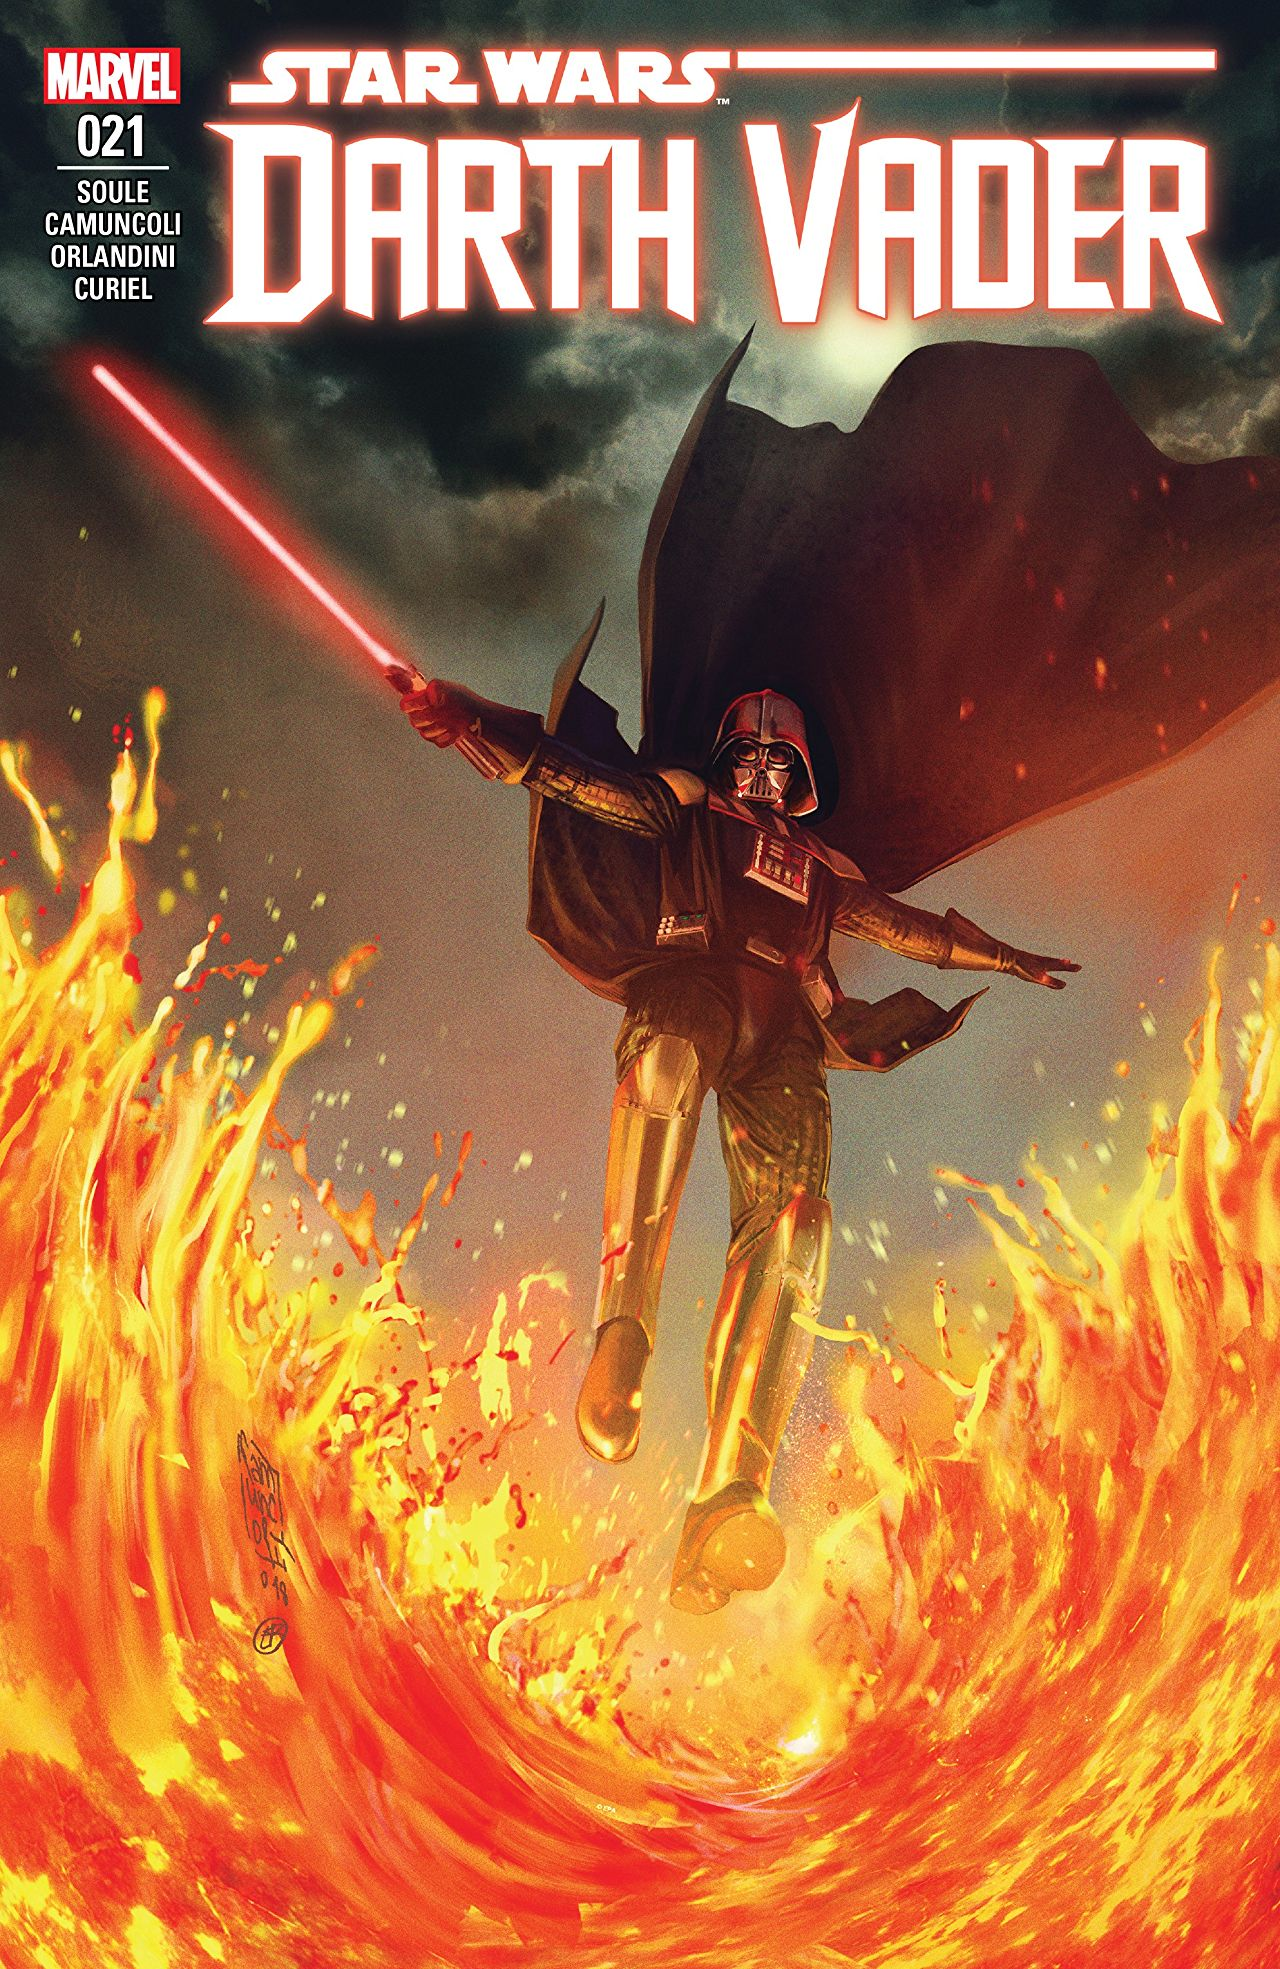 Darth Vader must fight against his demons and new ones.